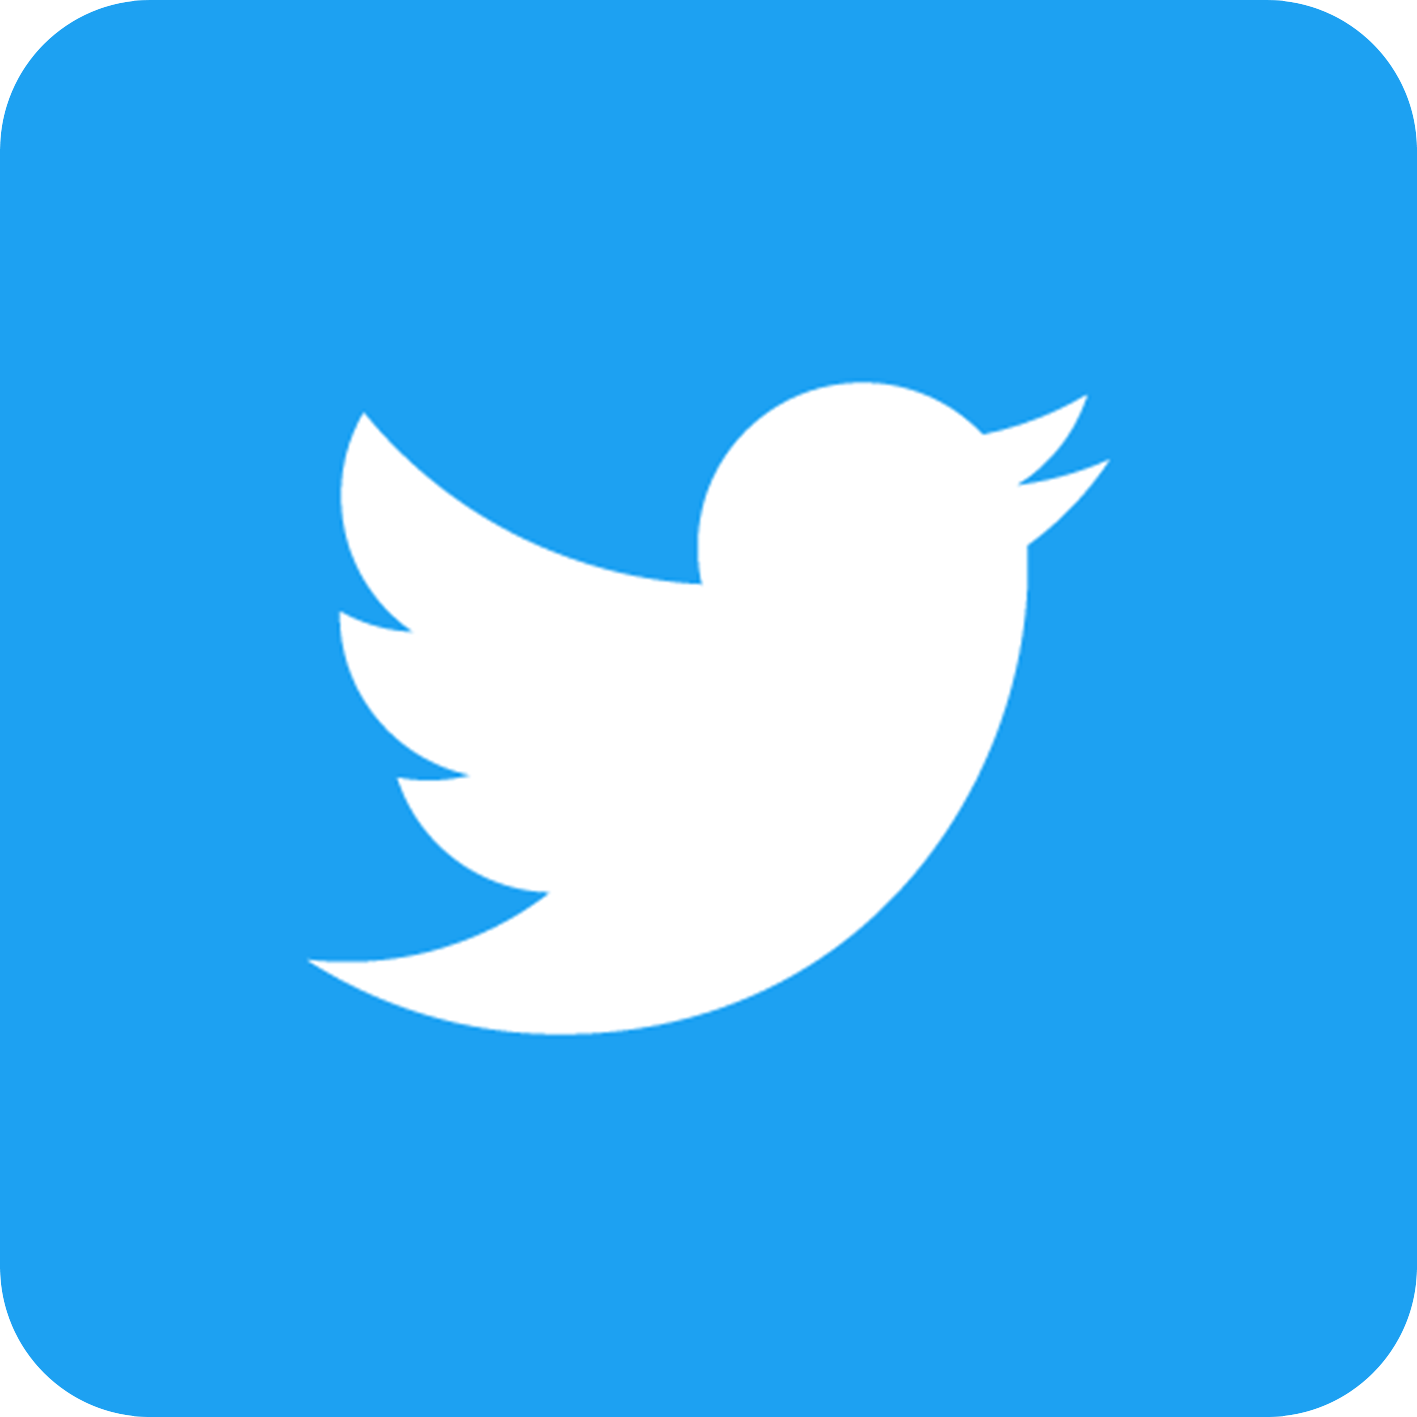 twitter logo transparent 15